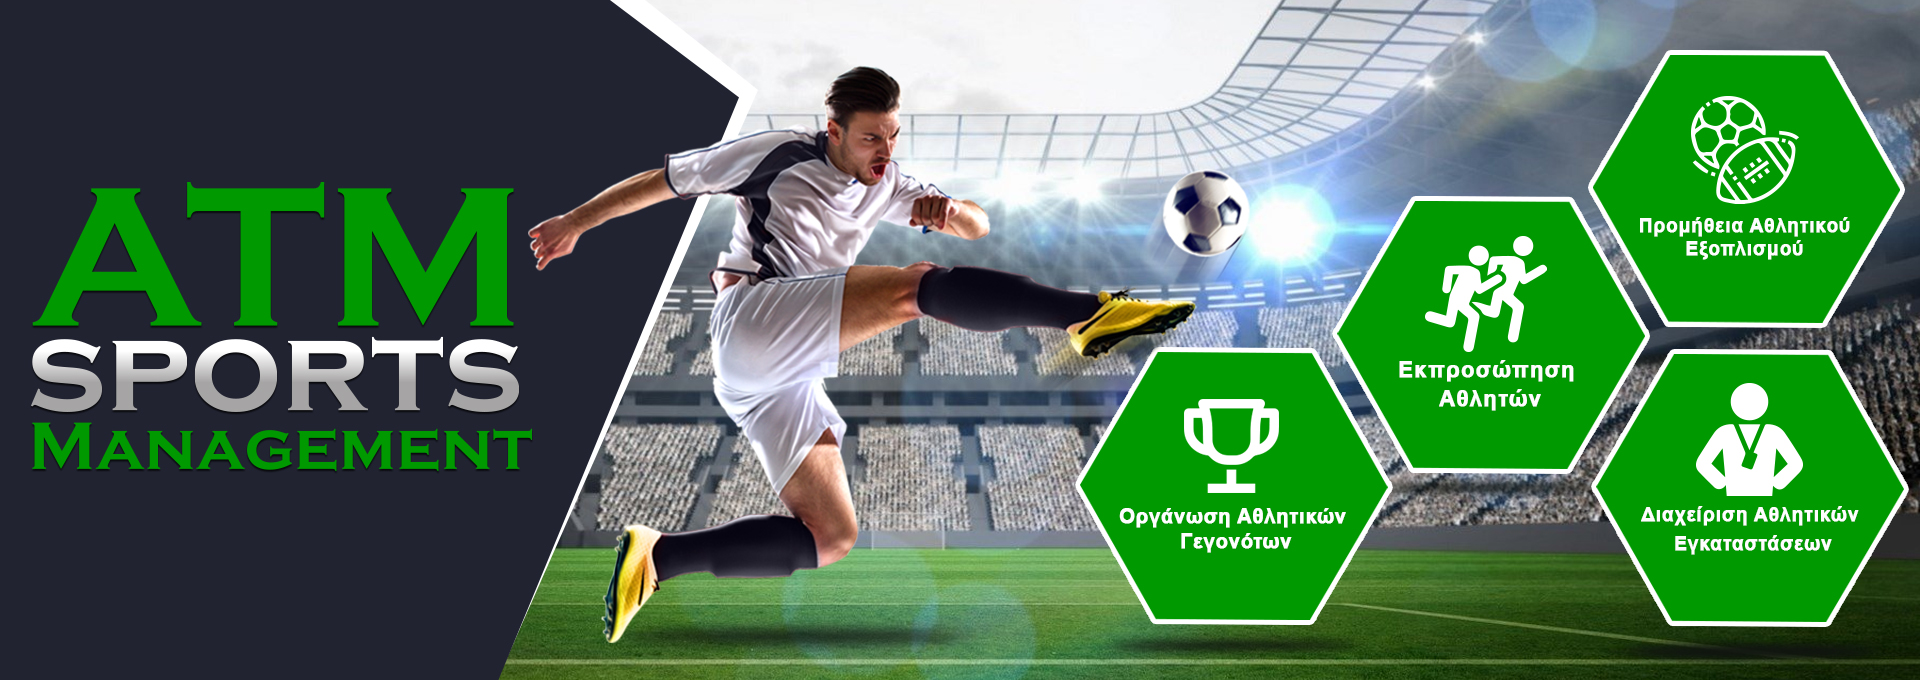 atm betting online sports